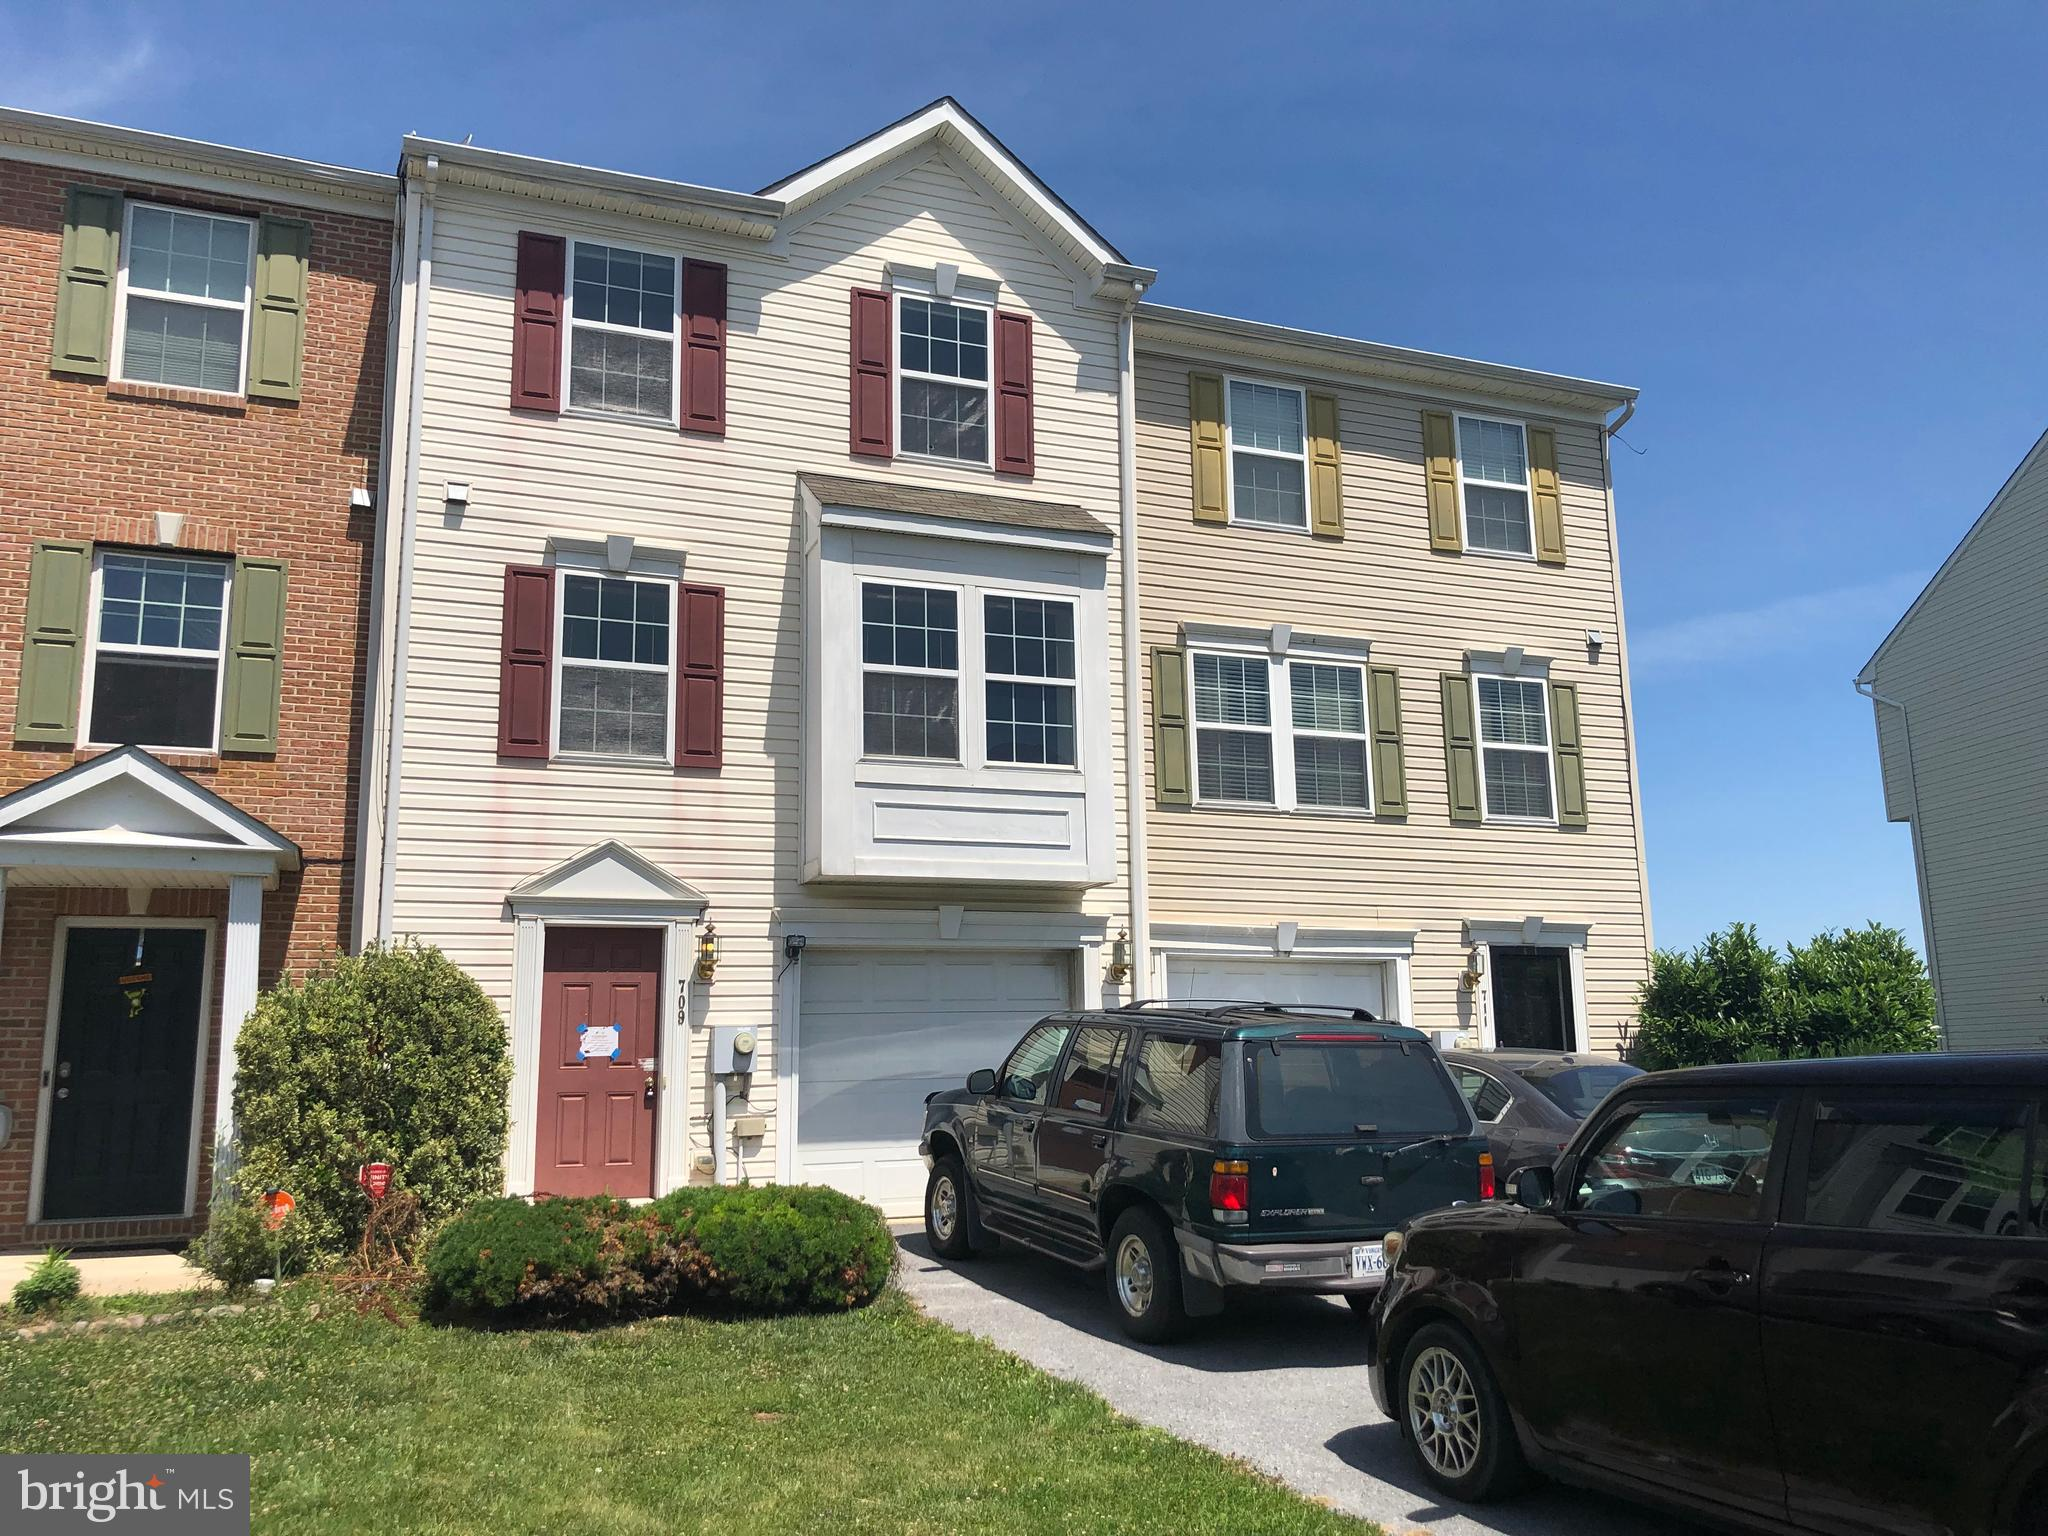 Great location! Home is located in the Prentiss Point SD, close to major roads, shopping and entertainment. This 3 story townhouse has a fully finished basement making it a 3 BR, 3.5 BA home with a fenced rear yard and 2nd level deck, just off the dining area. This property may qualify for Seller Financing (Vendee) .